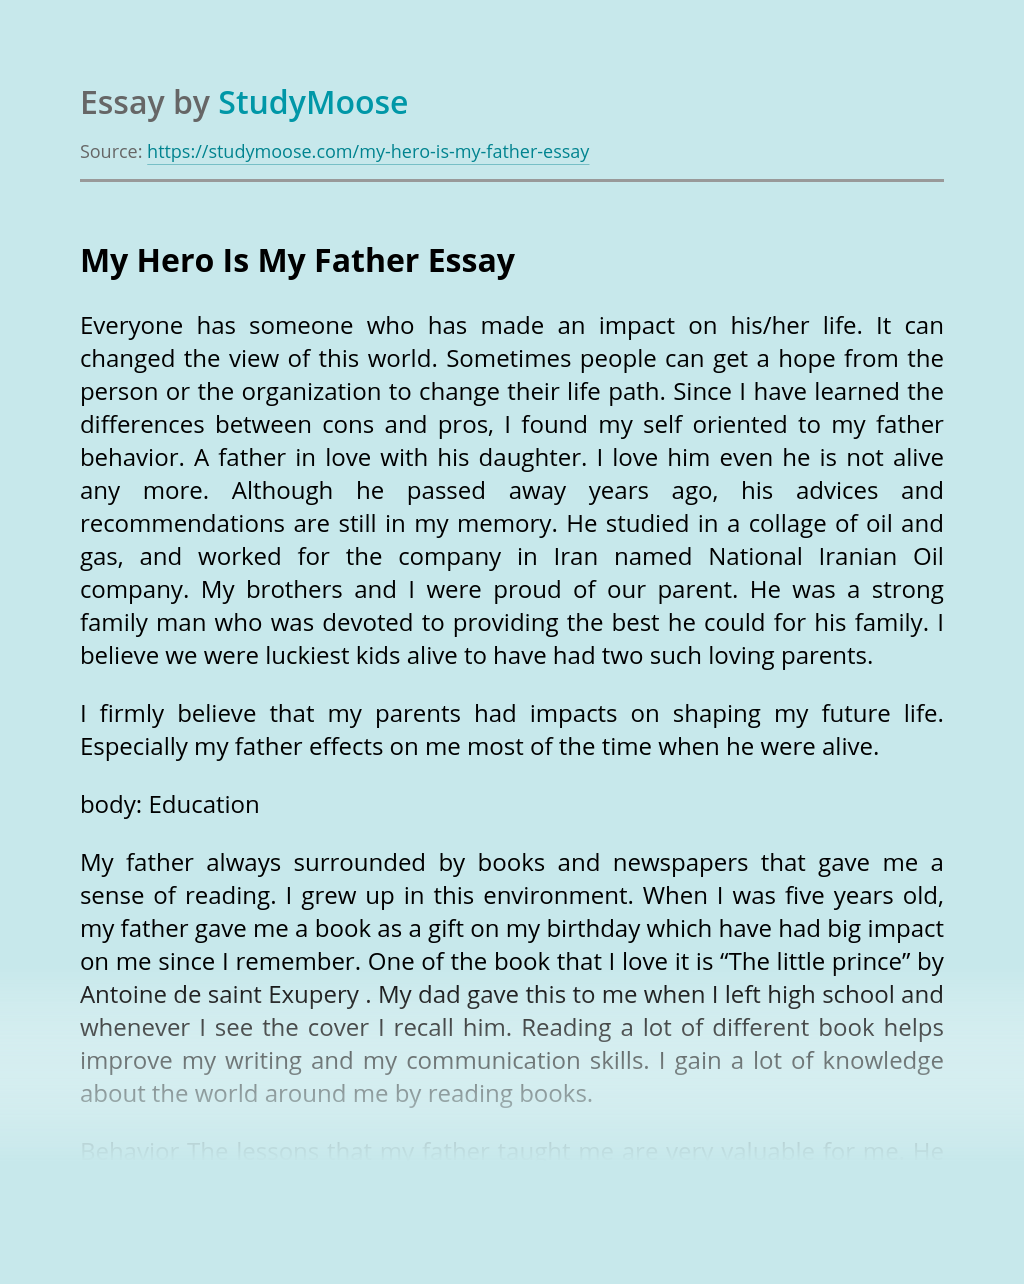 My Hero Is My Father